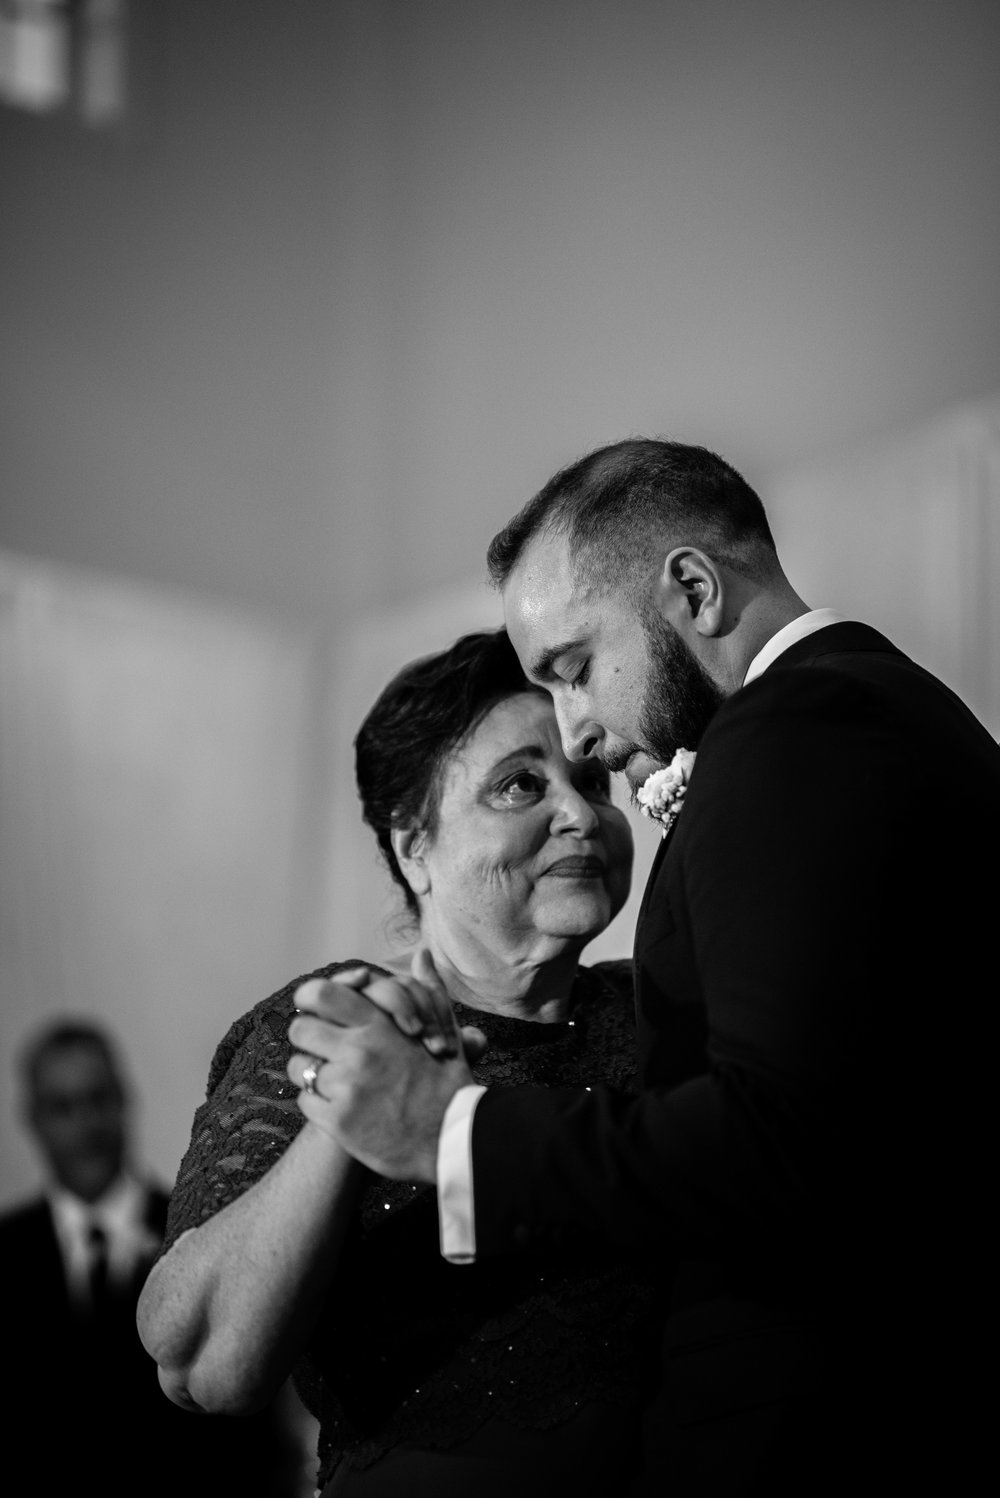 I'll admit it: I really love a picture that nearly - or maybe totally - makes me cry when I see it. At  Josh and Raquel's wedding I really enjoyed Josh's mom; she was just the sweetest, with a lot of love for her son. When I was photographing them dancing, I vividly remember stepping back and just watching and actually tearing up, which rarely happens, but when it does I gain even more resolve to capture the moment as it was.